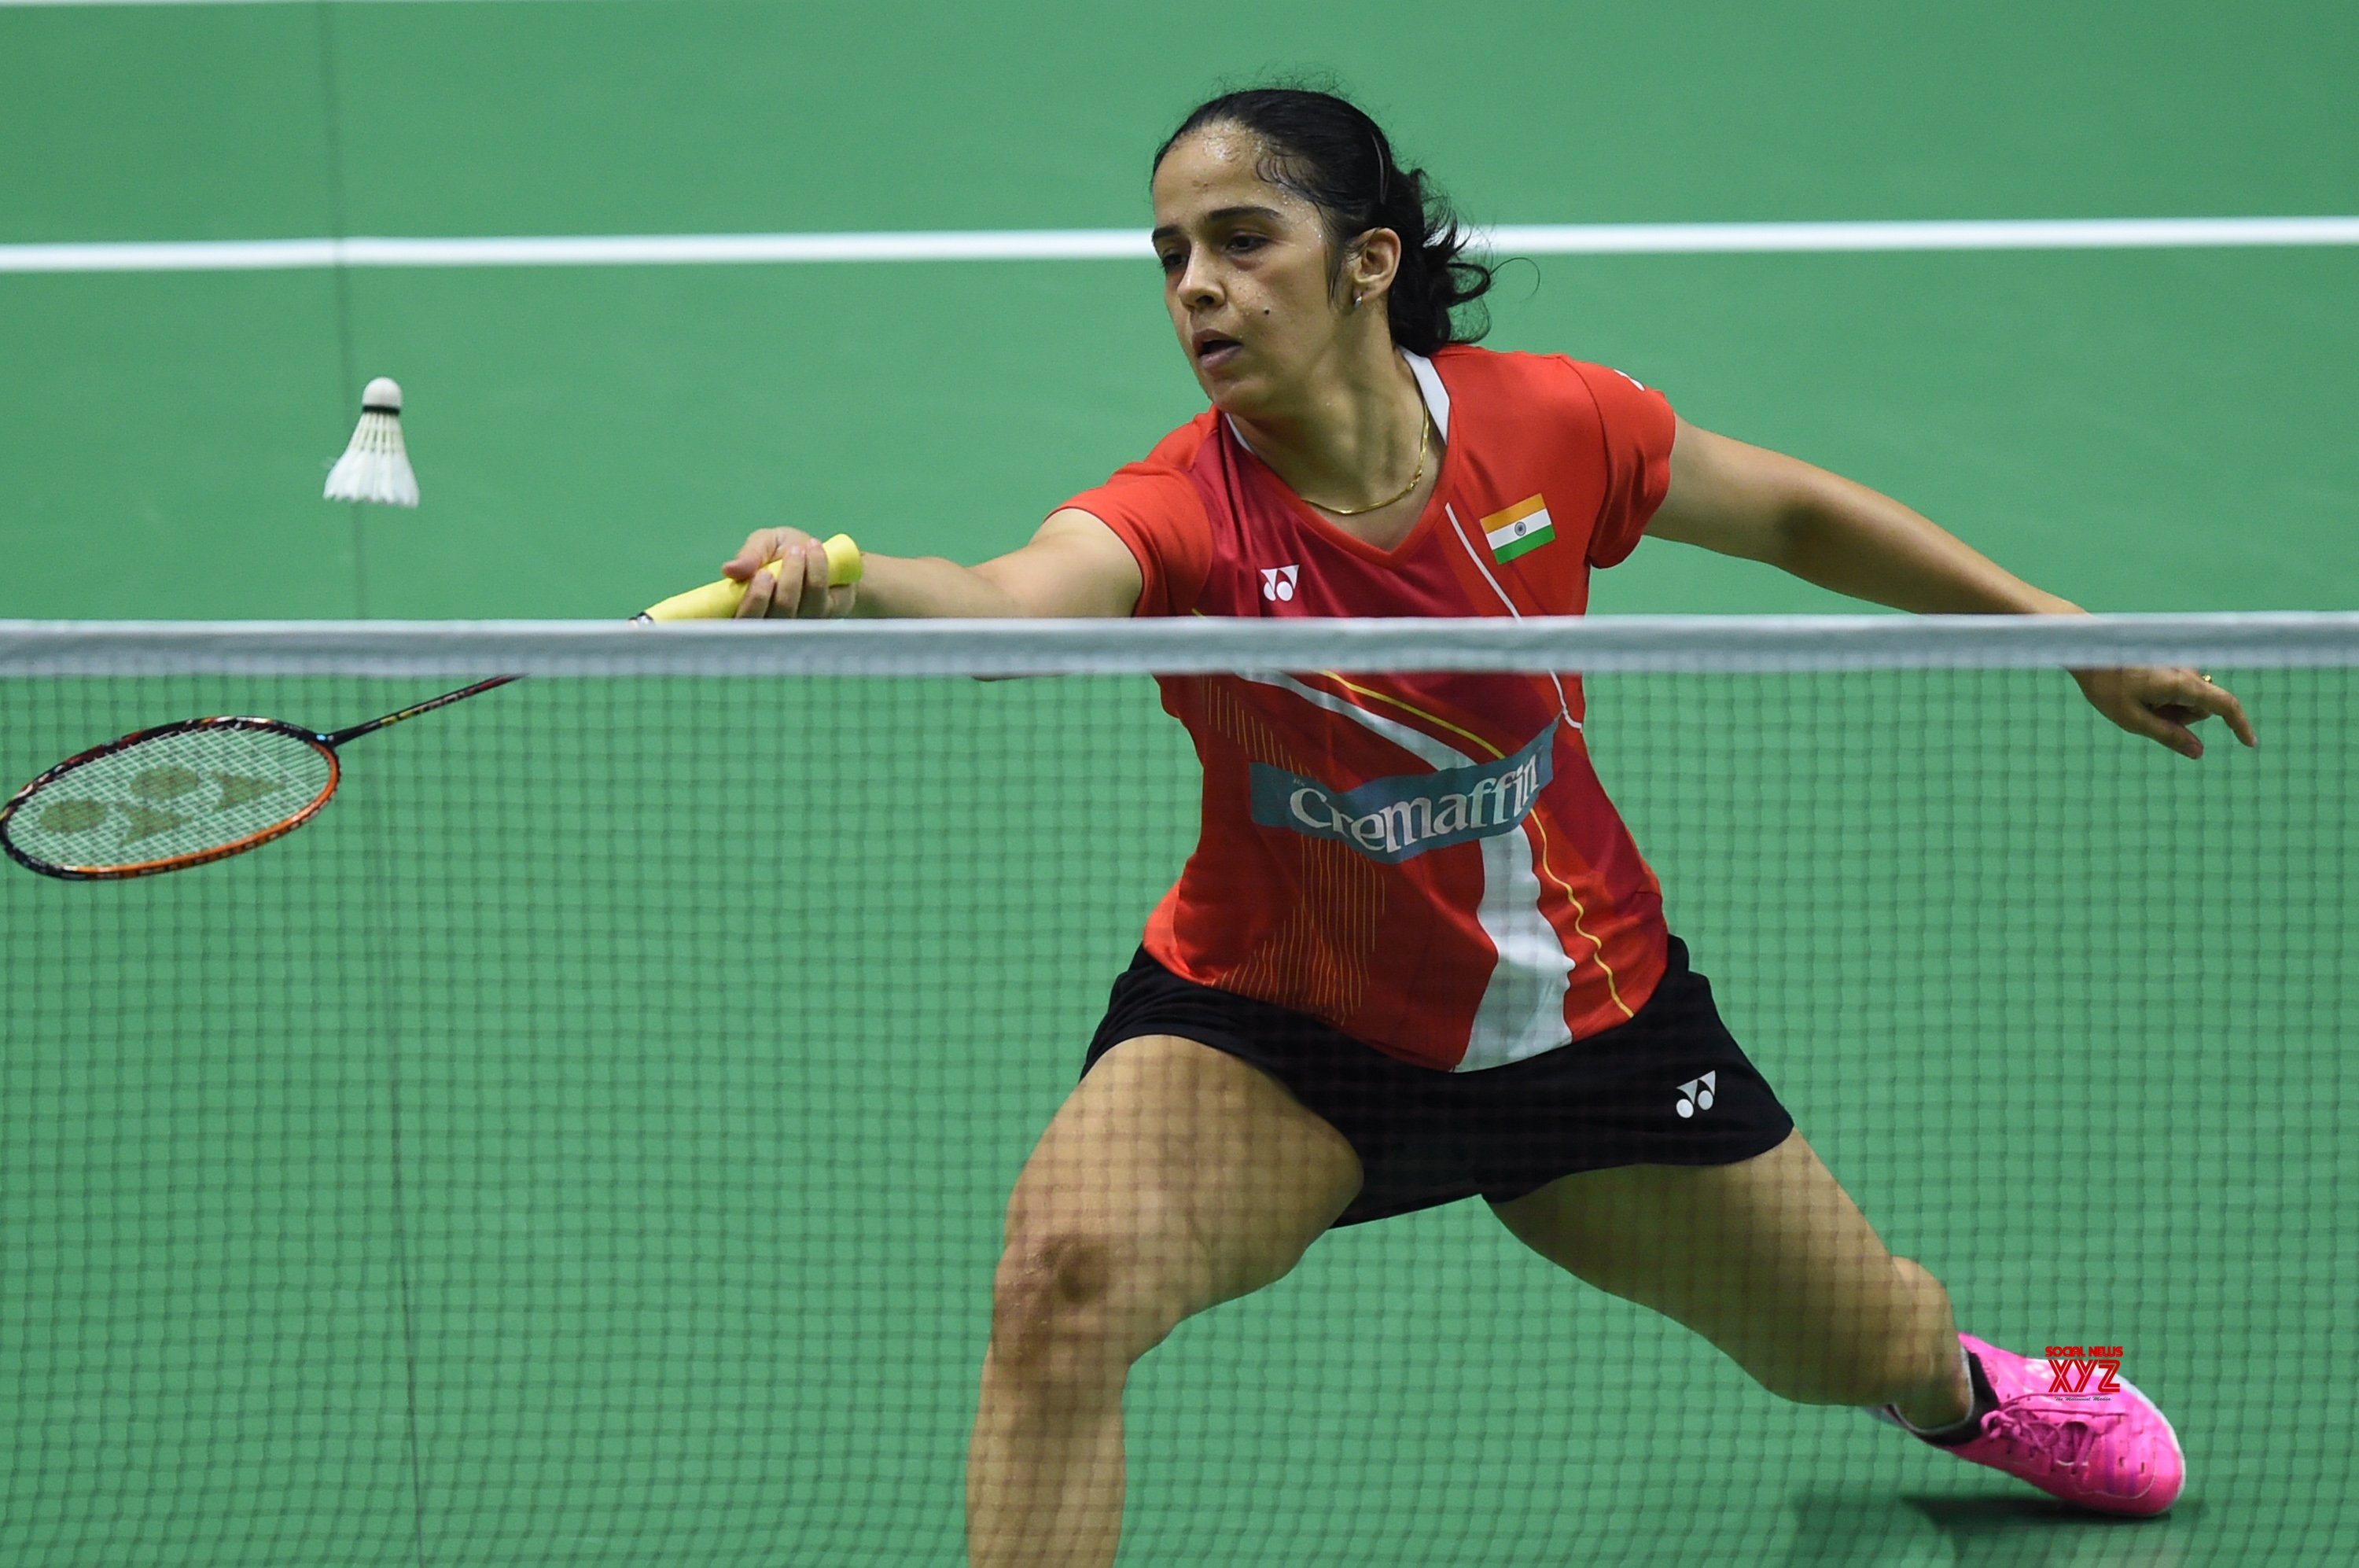 After Sindhu, Saina too exits in 1st round of China Open